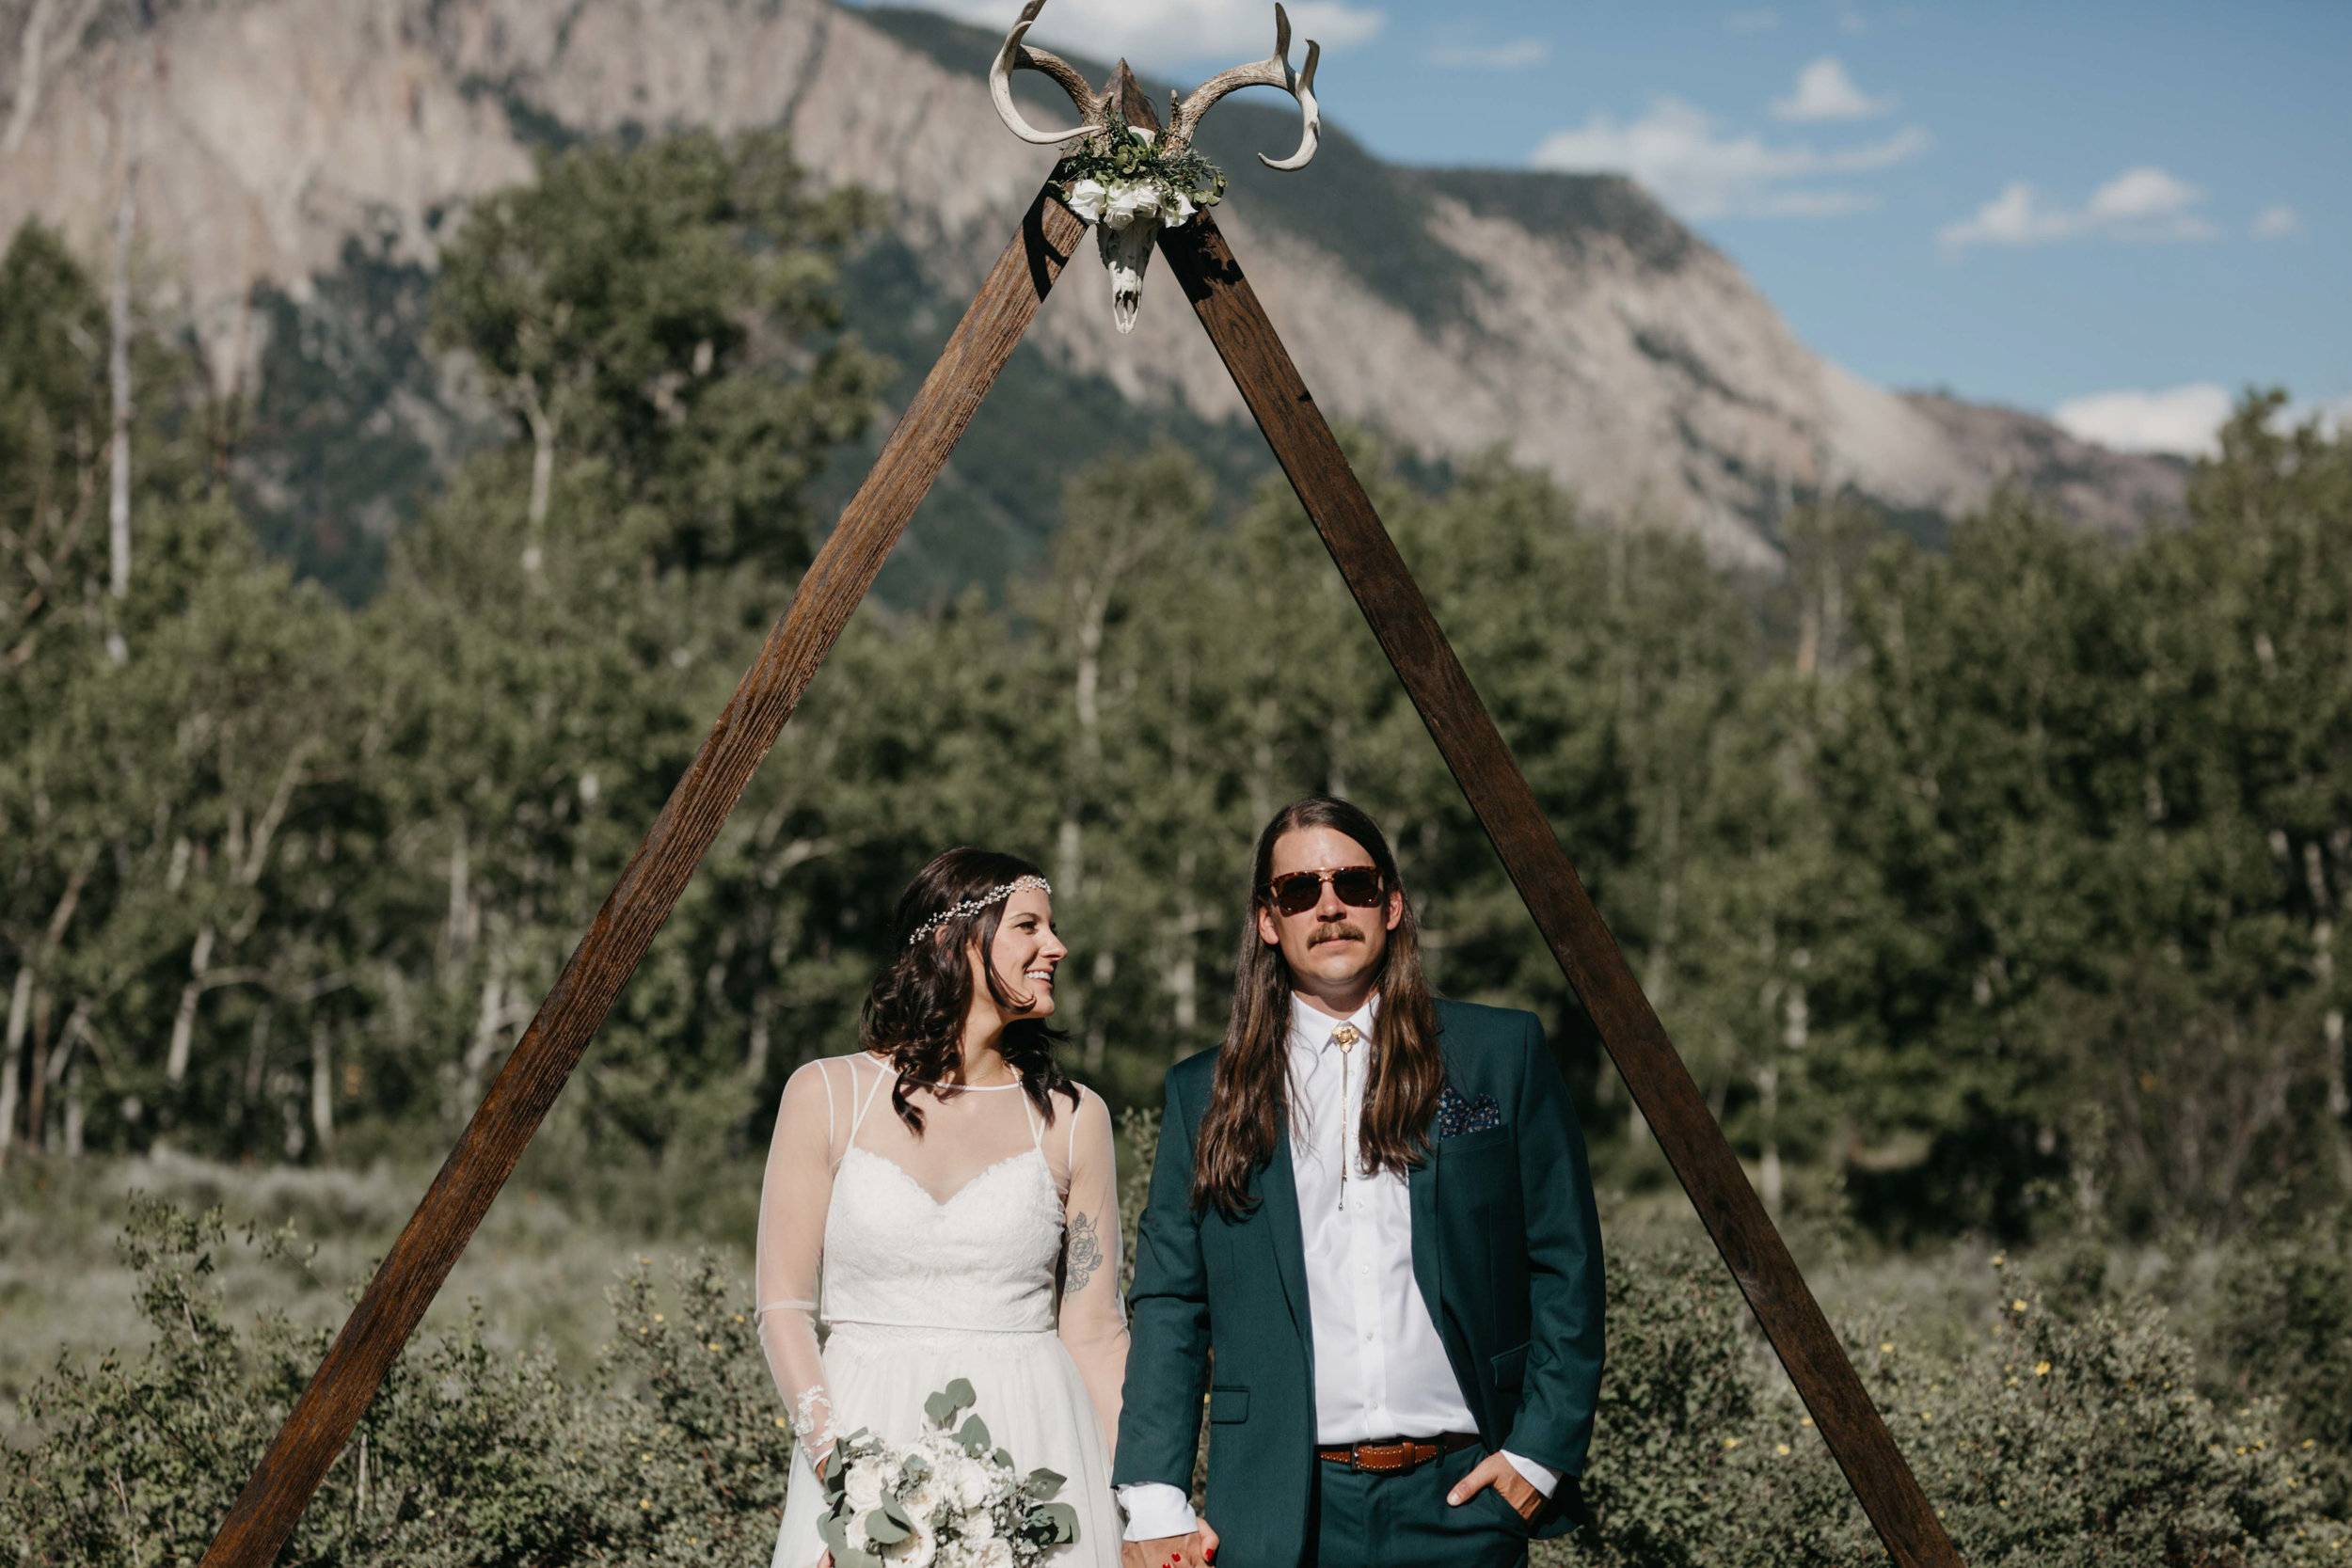 Colorado-Wedding-Photographer-53.jpg